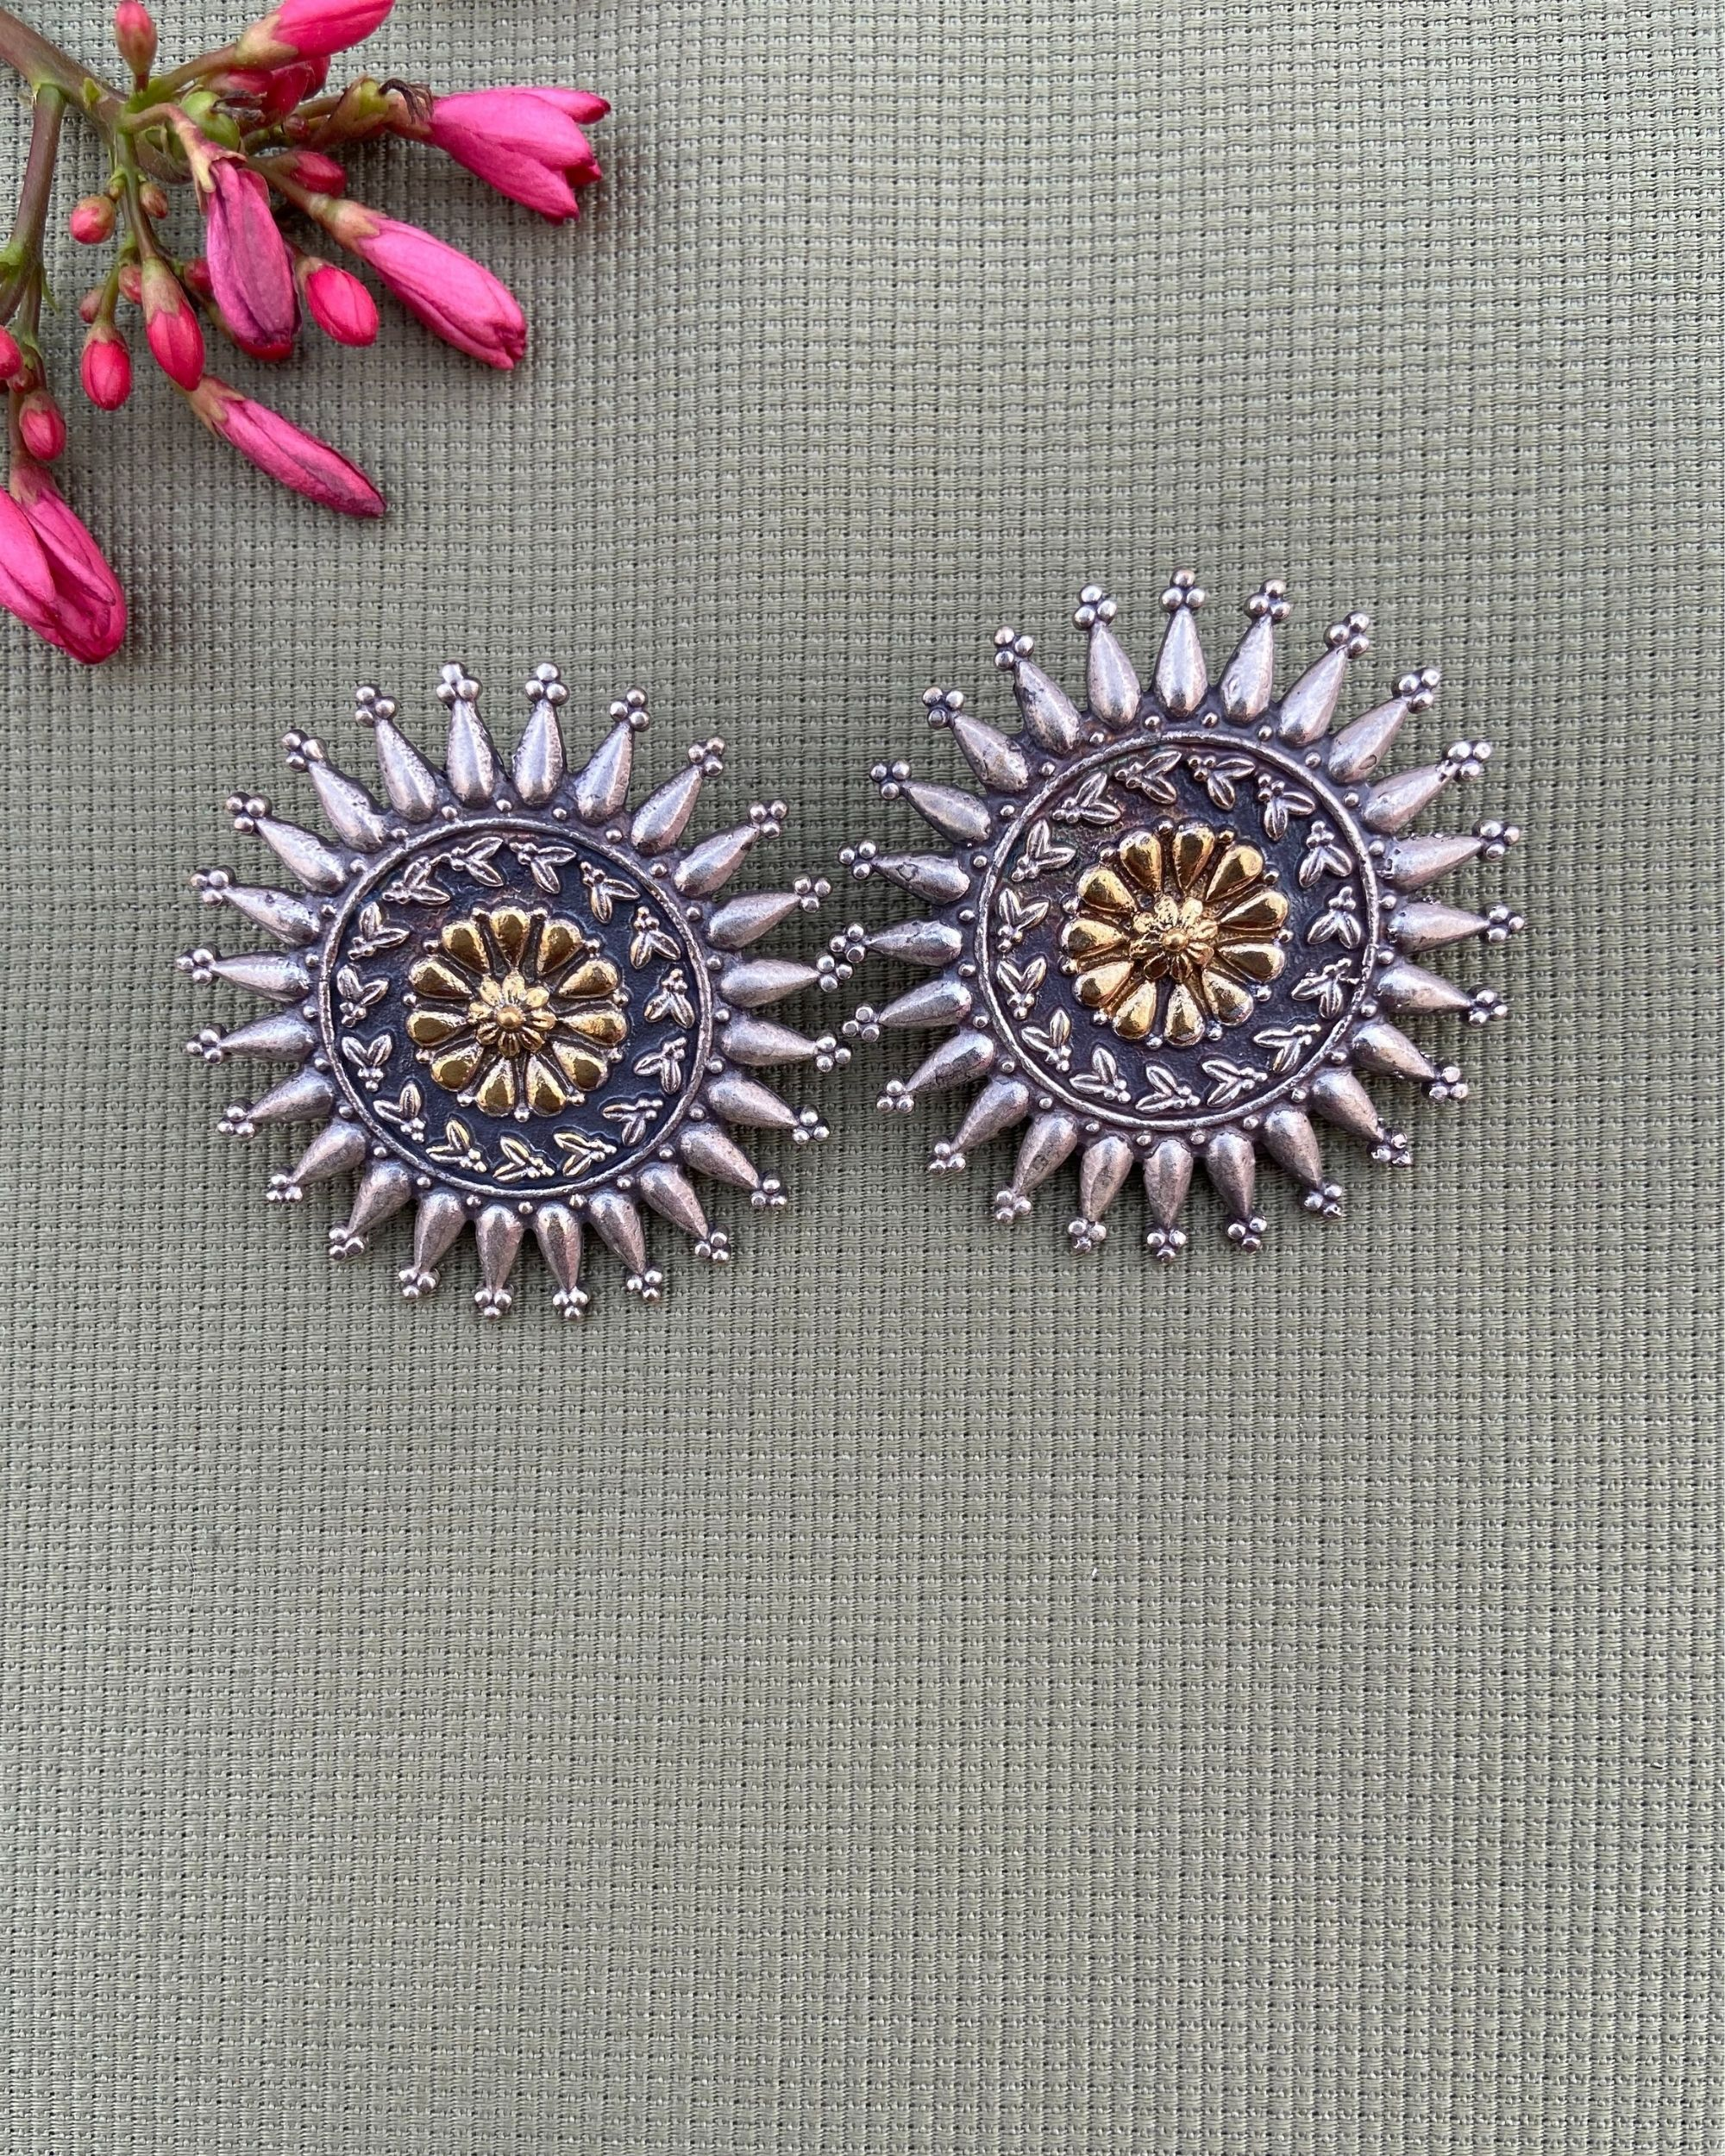 Floral engraved antique earring